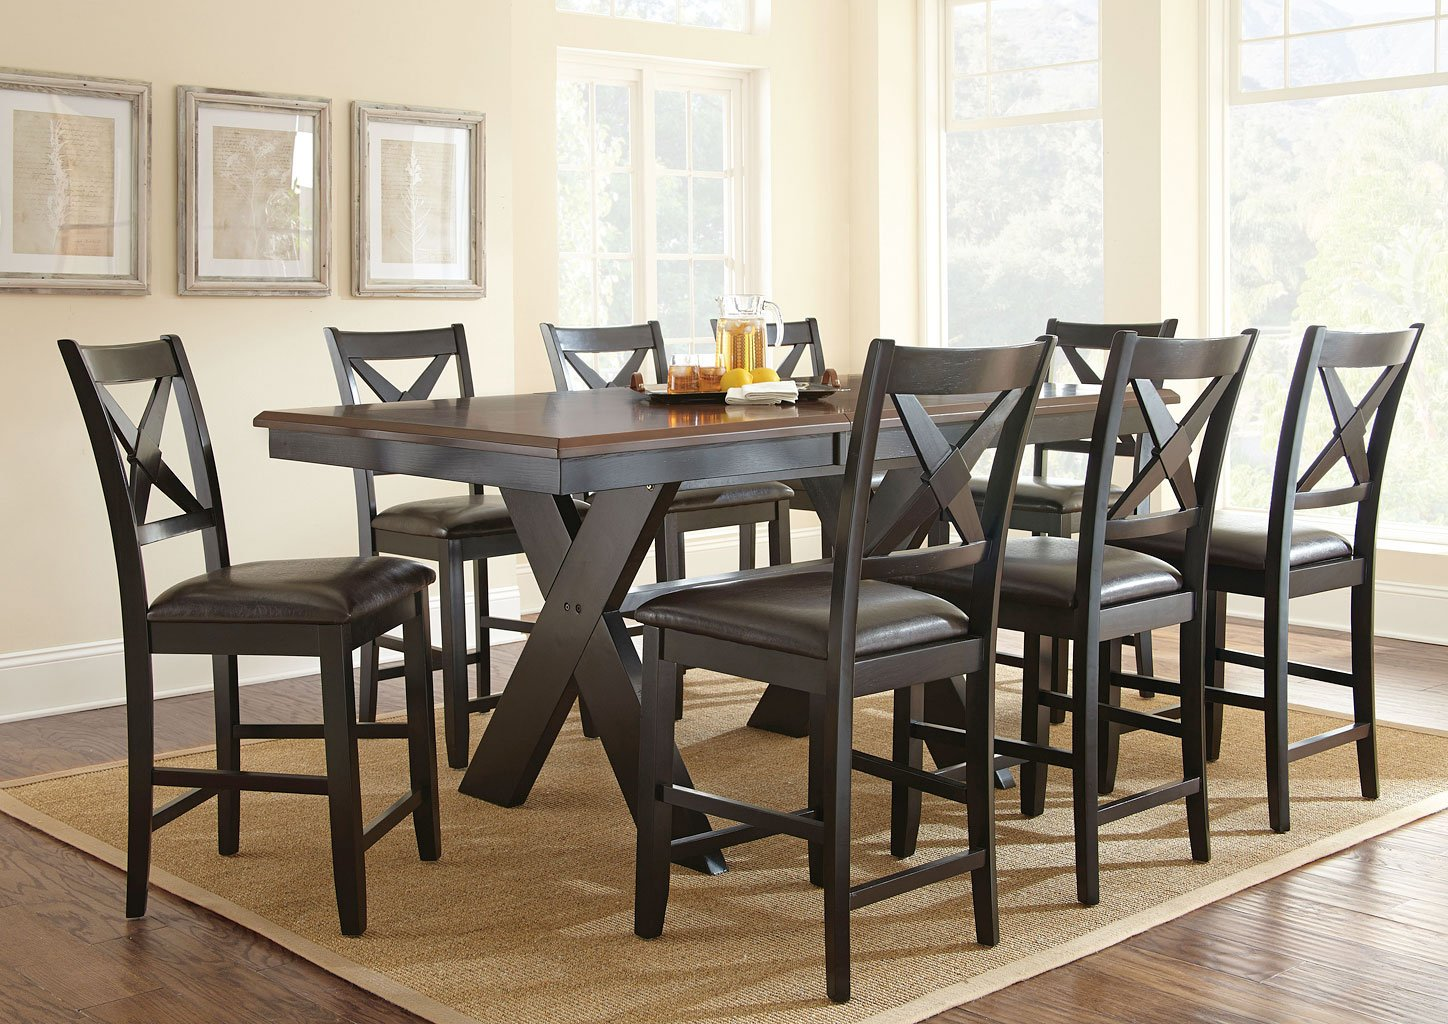 Violante Counter Height Dining Room Set Steve Silver